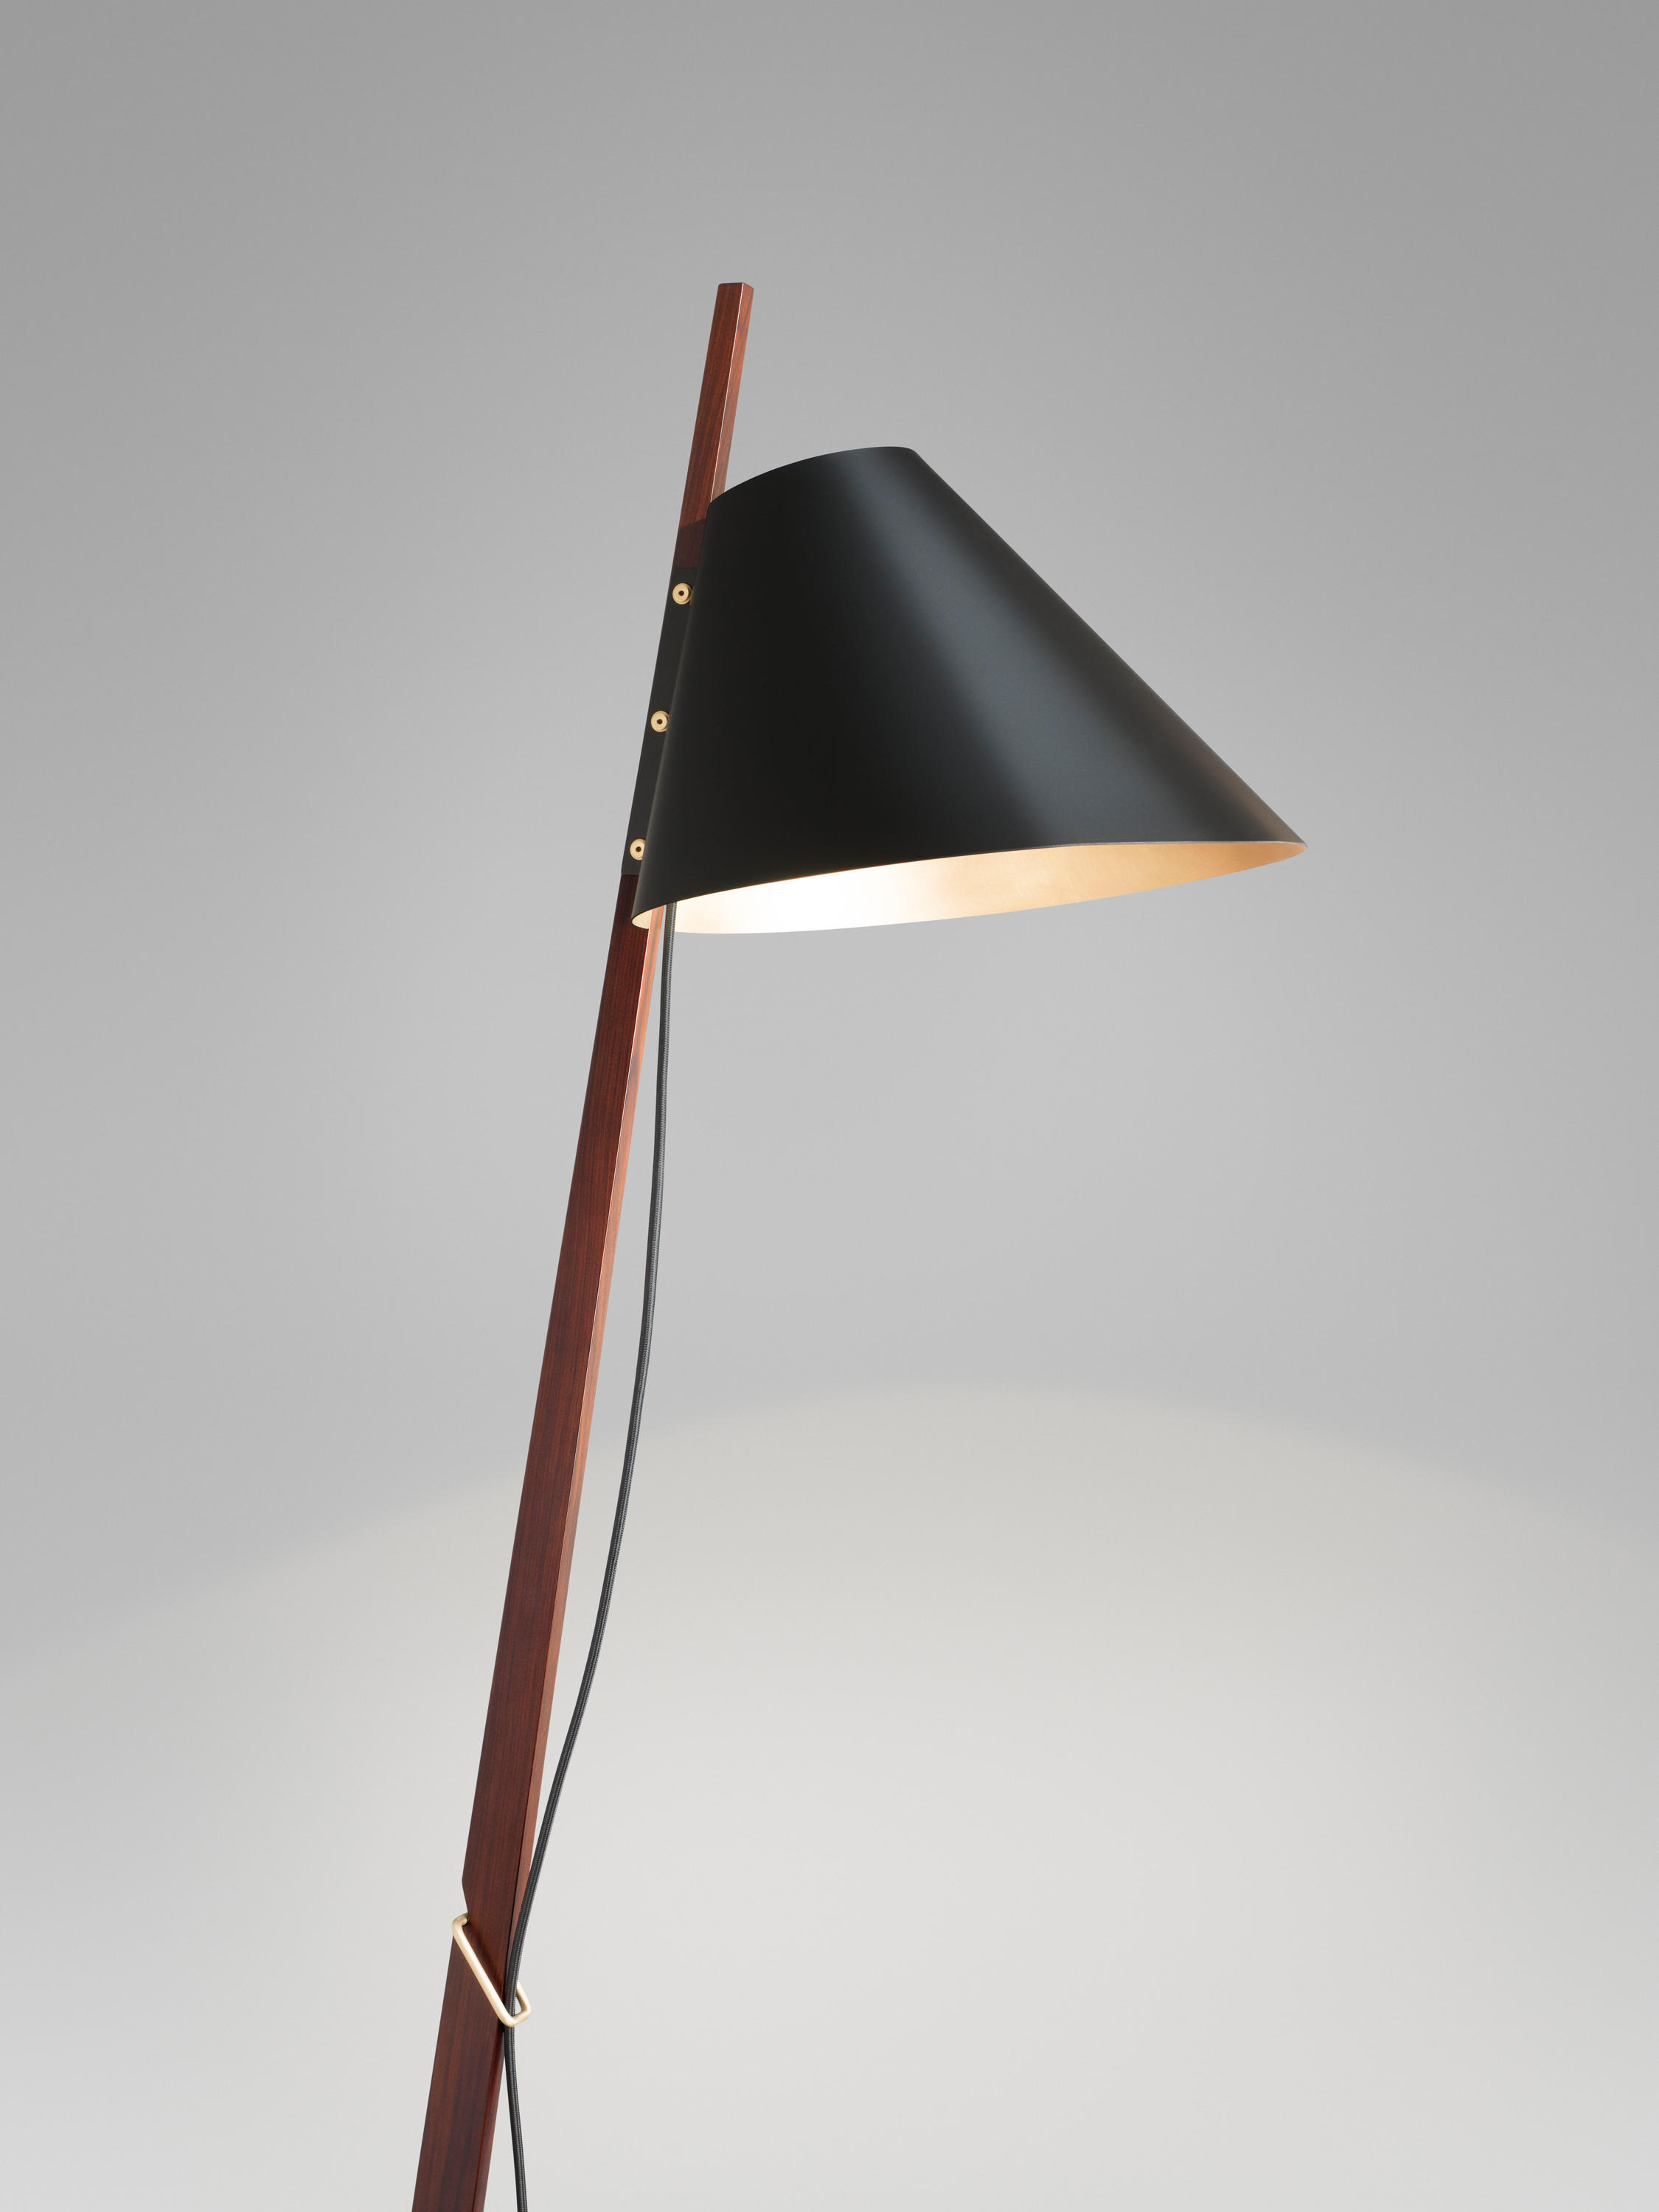 eclectic lamps metal glass resource century kathy steel lamp designer decor kuo product royal floor productlist mid home